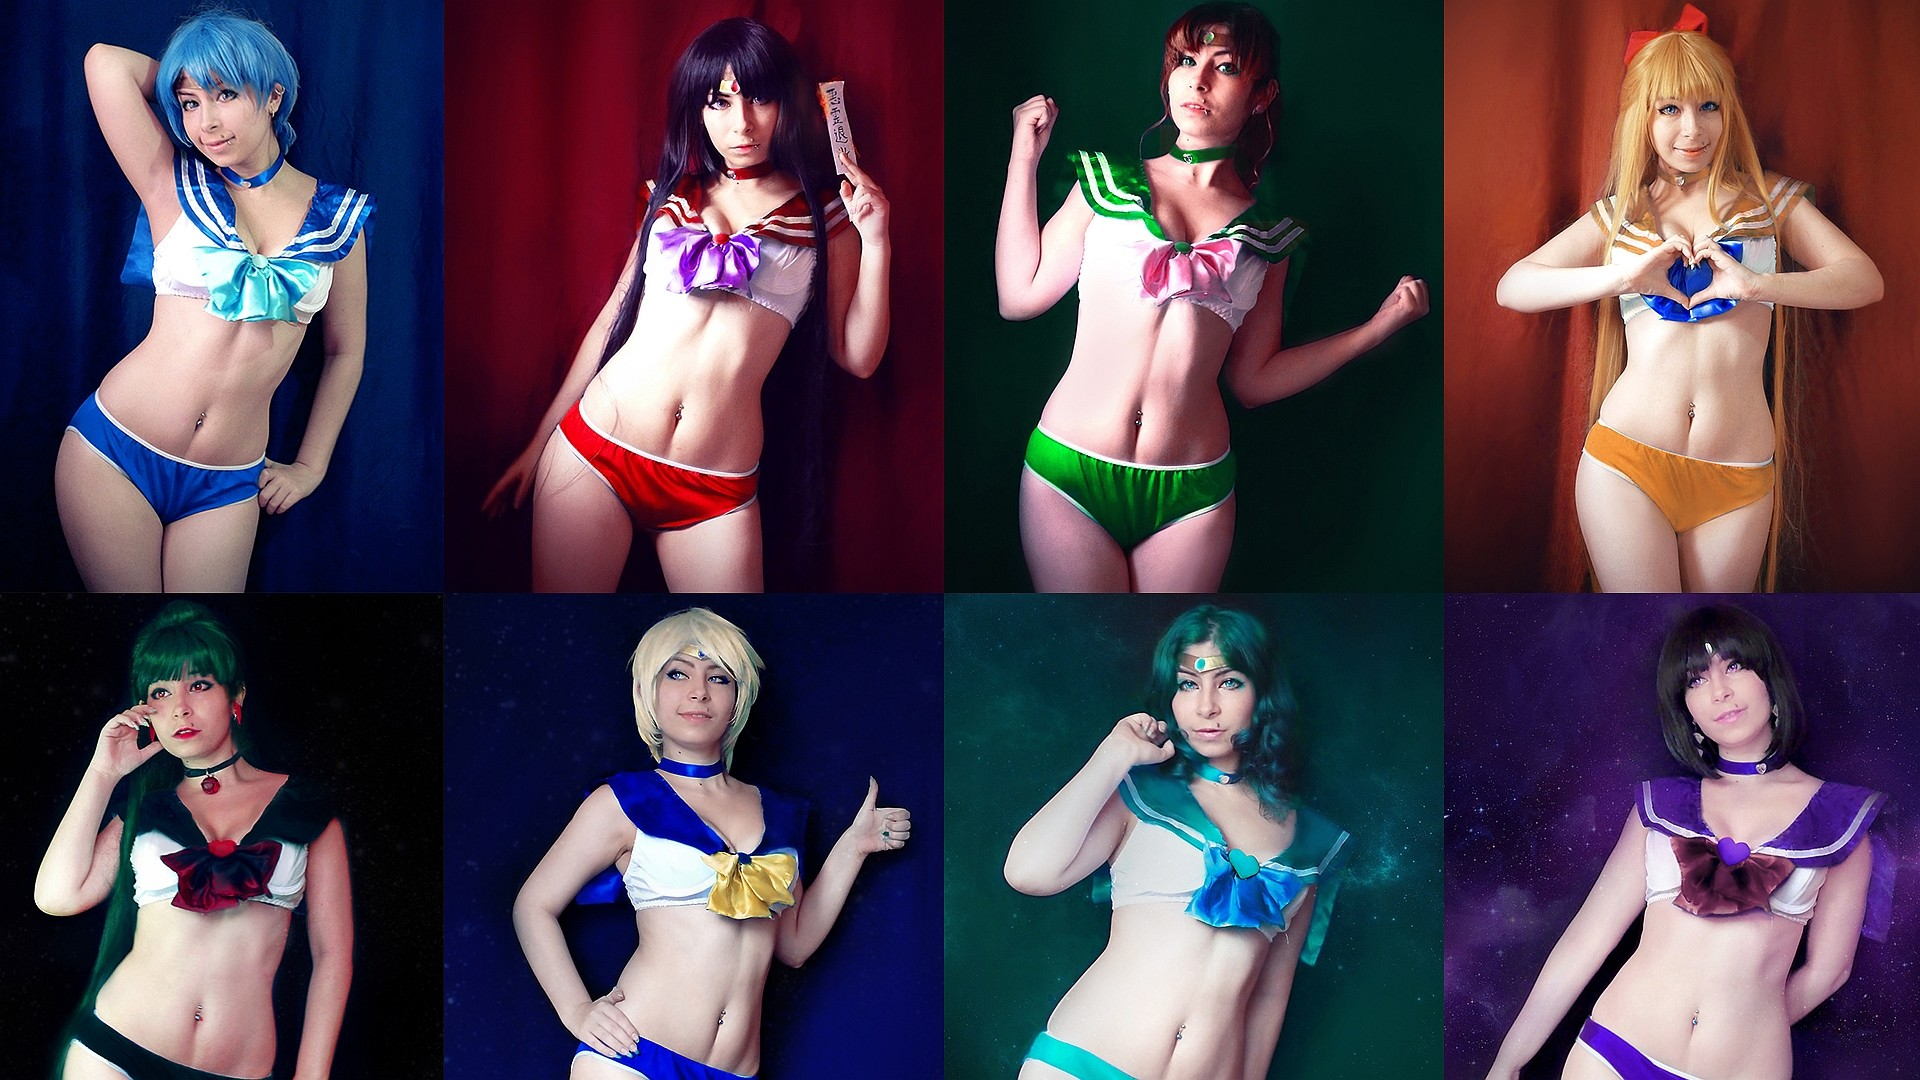 Wallpaper of Inner & Outer Sailor Scouts cosplay from Sailor Moon